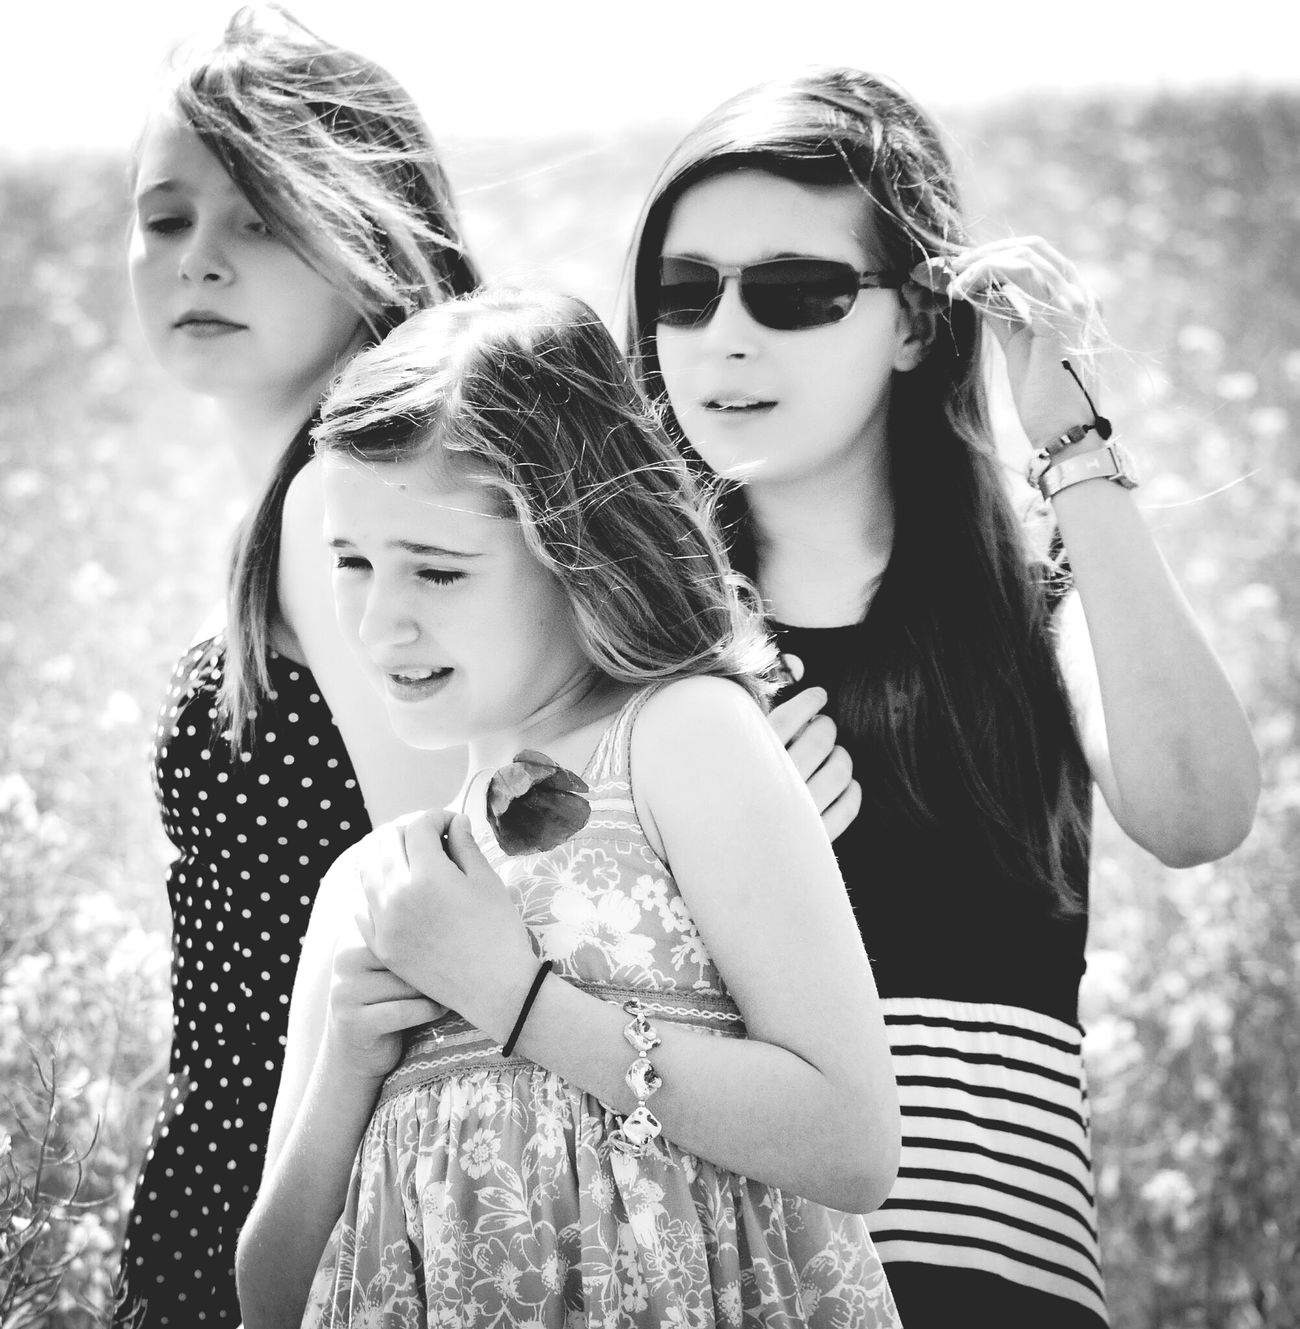 My beautiful daughters Enjoying Life Taking Photos My Live, My Wold